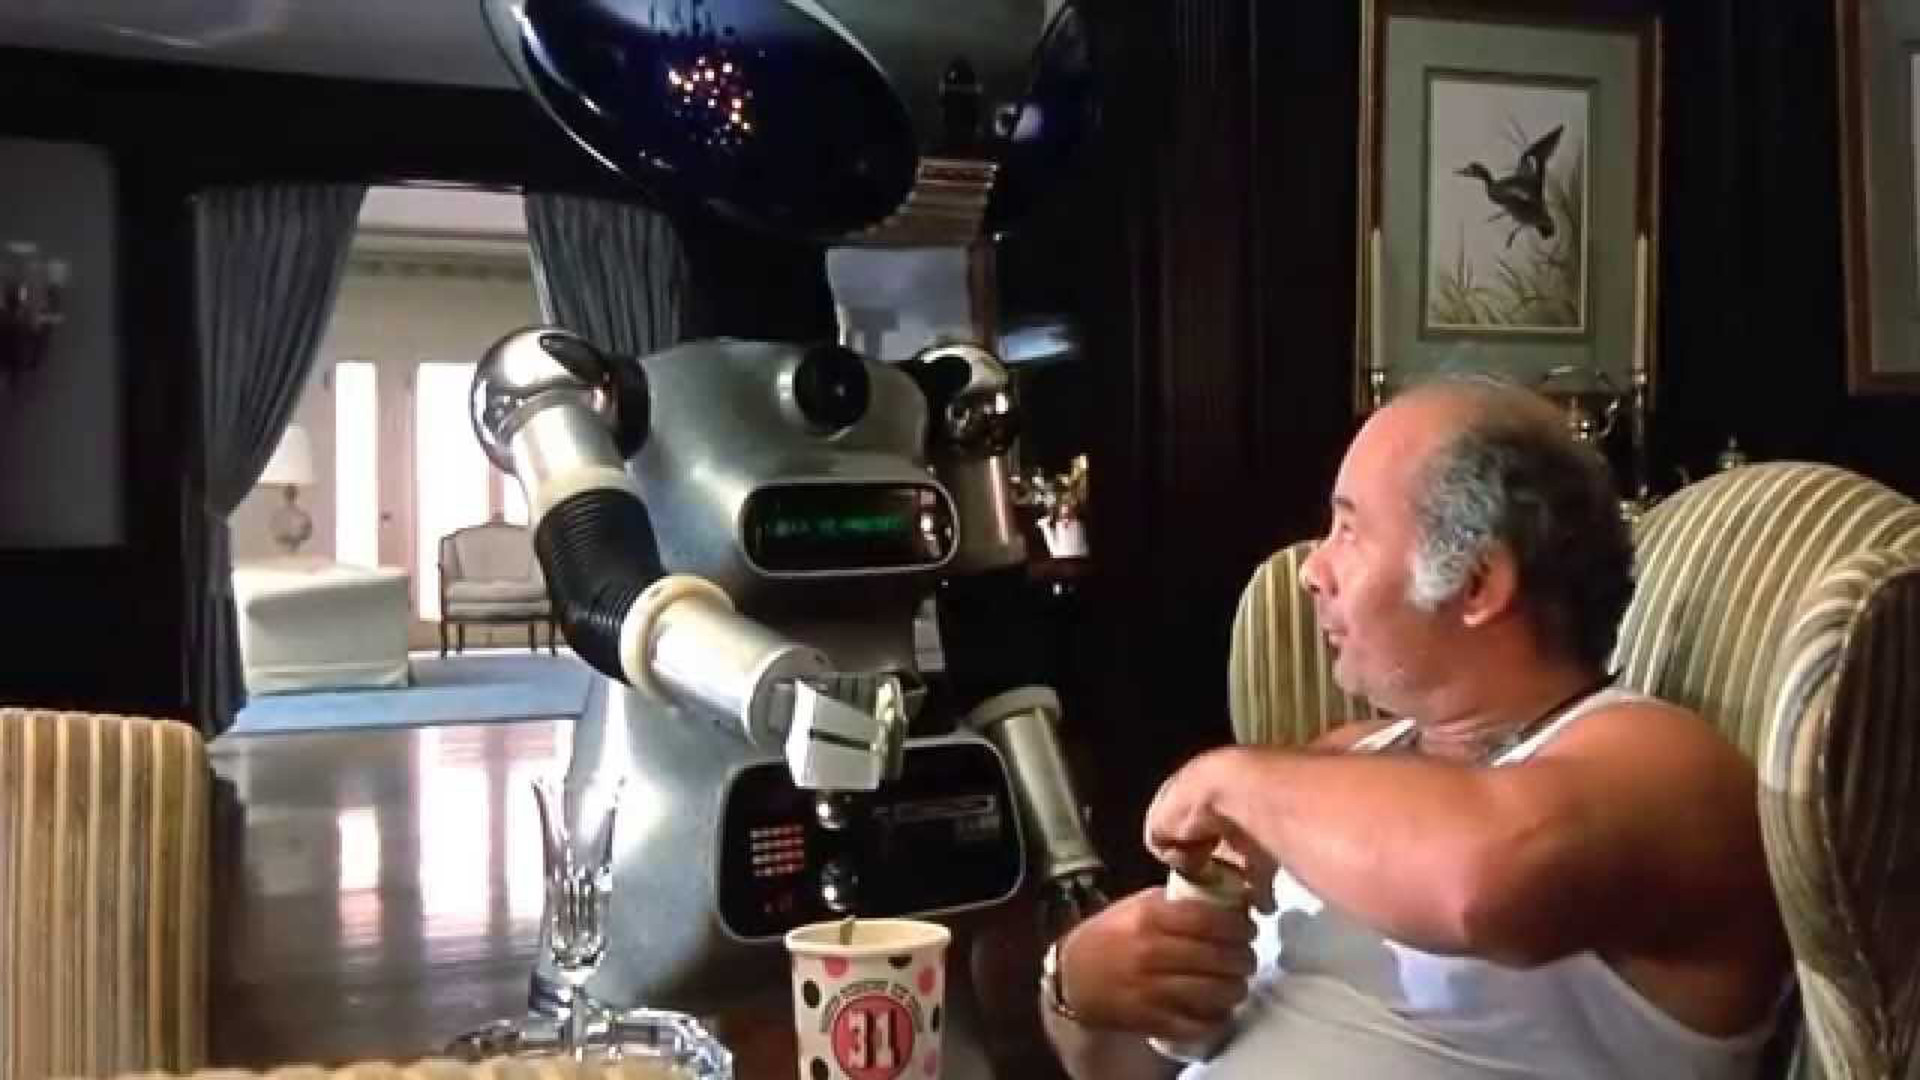 The robot butler from Rocky IV.